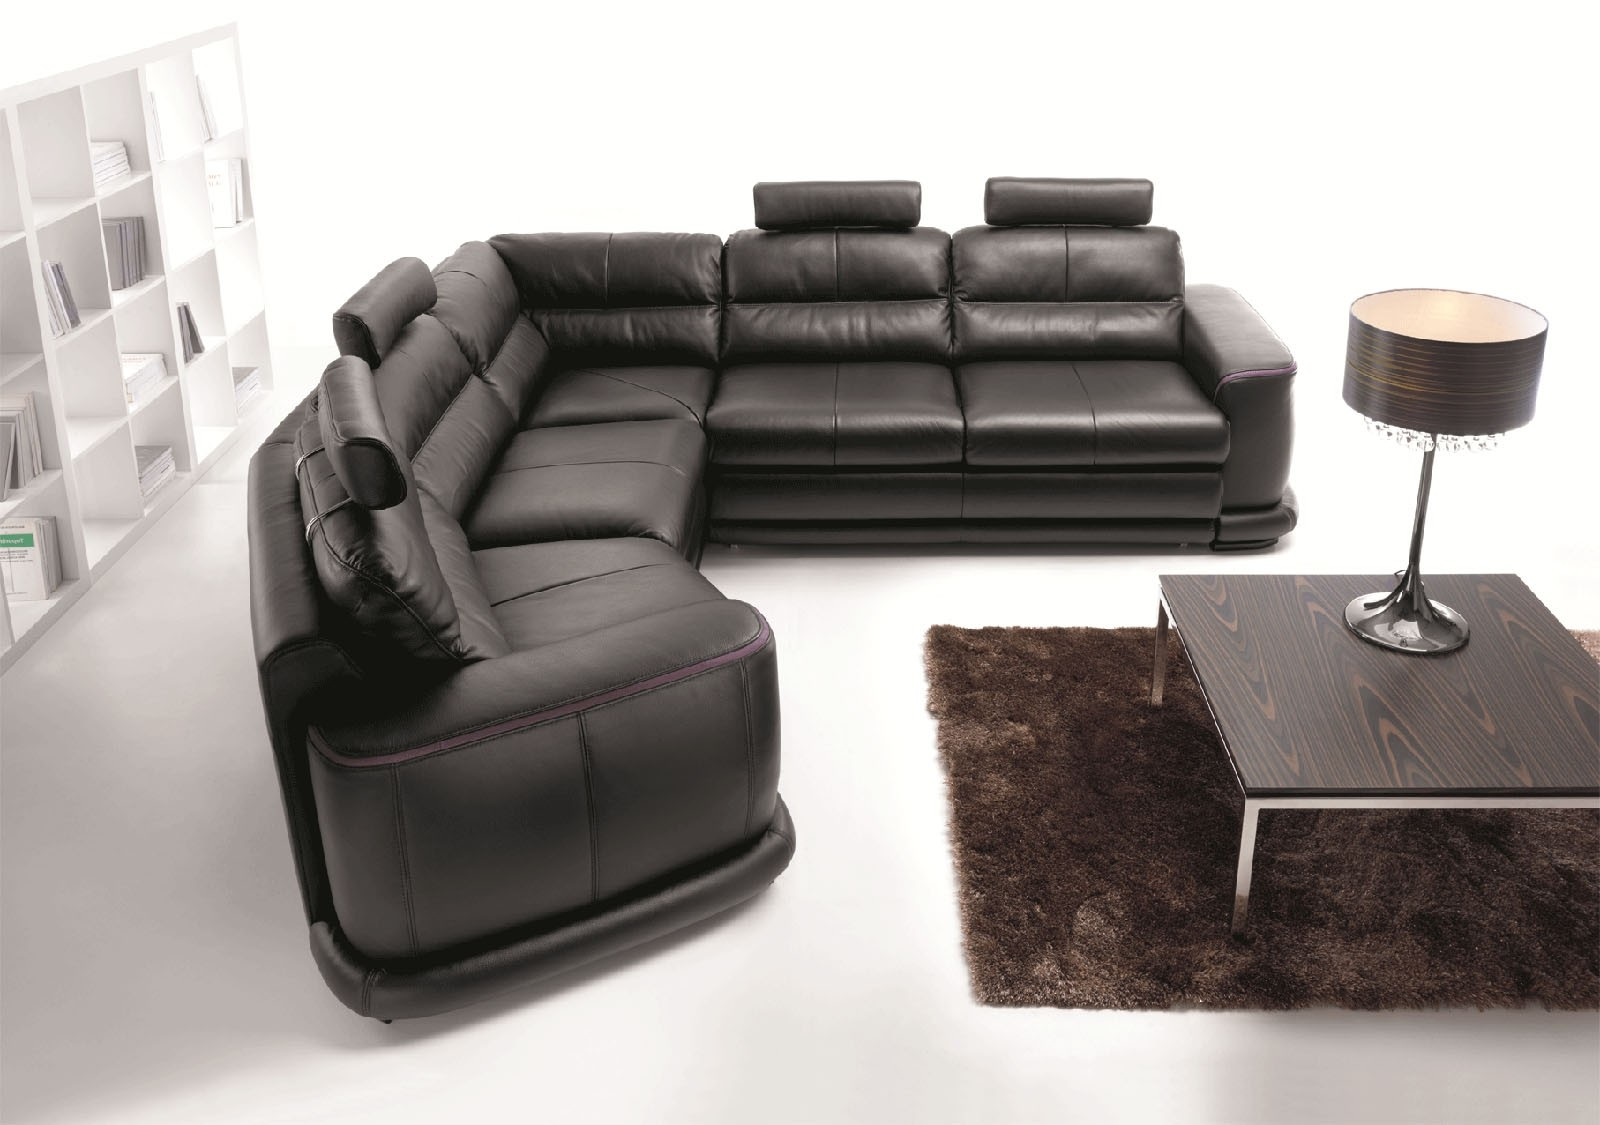 camino sectional sofa bed in black leather